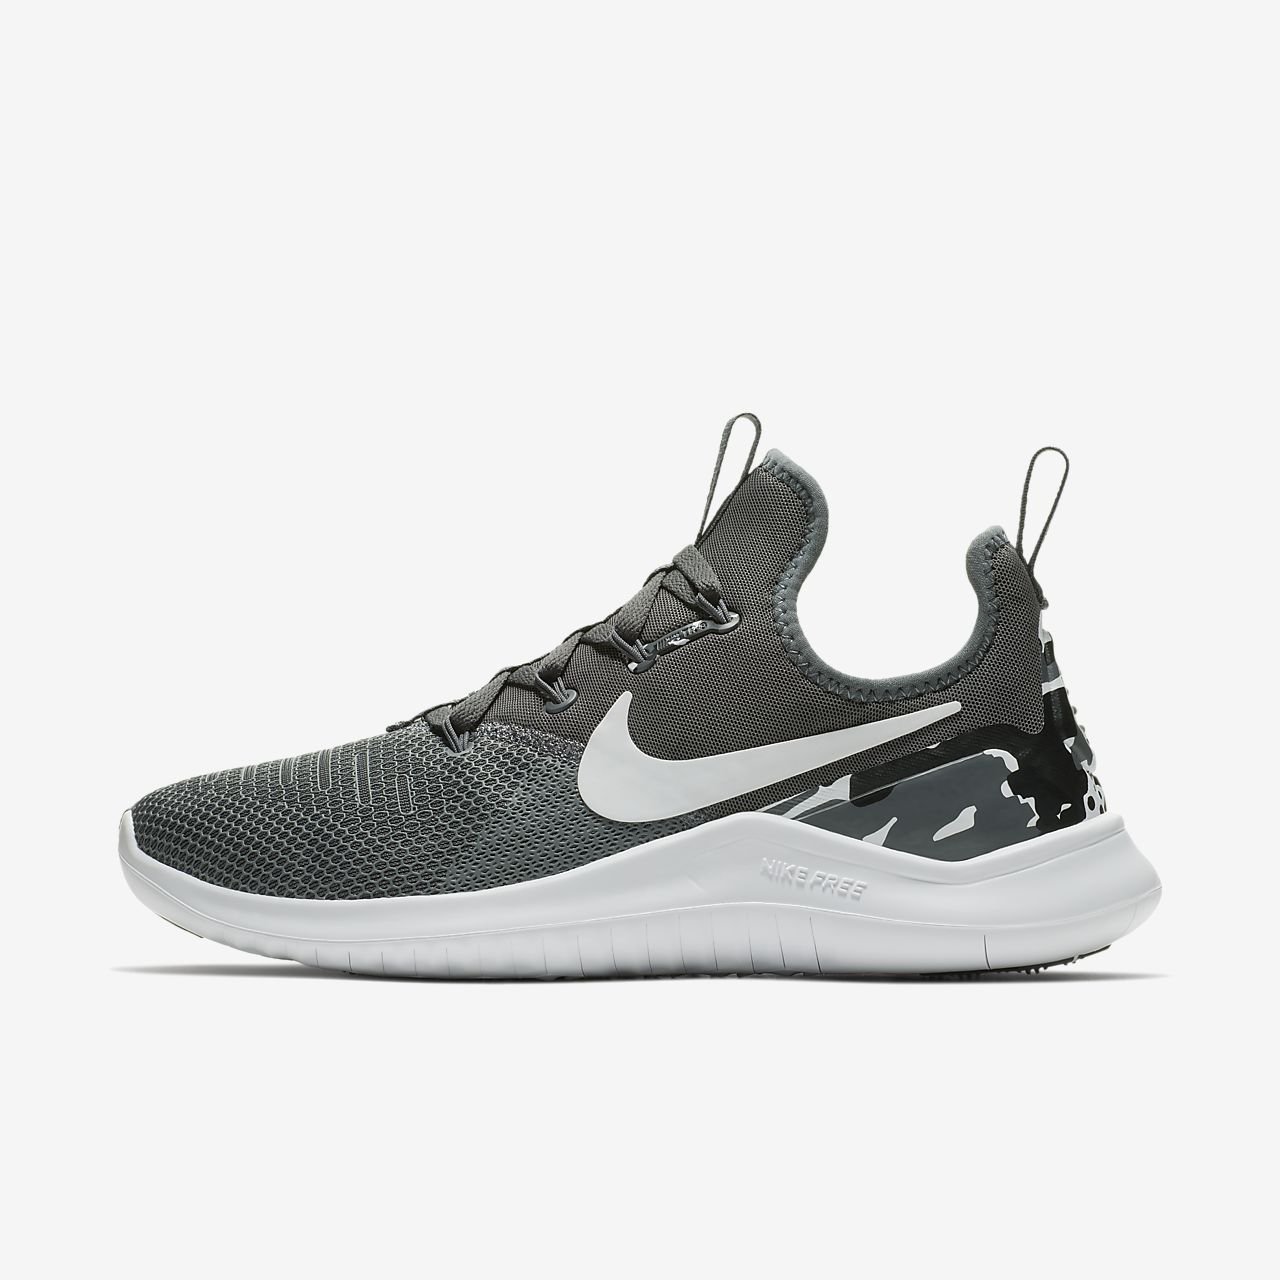 cheapest price cheap online visa payment online Nike Training Free Tr 8 Trainers In Black free shipping pre order clearance new arrival cheap 2014 newest Nd6T4Arr